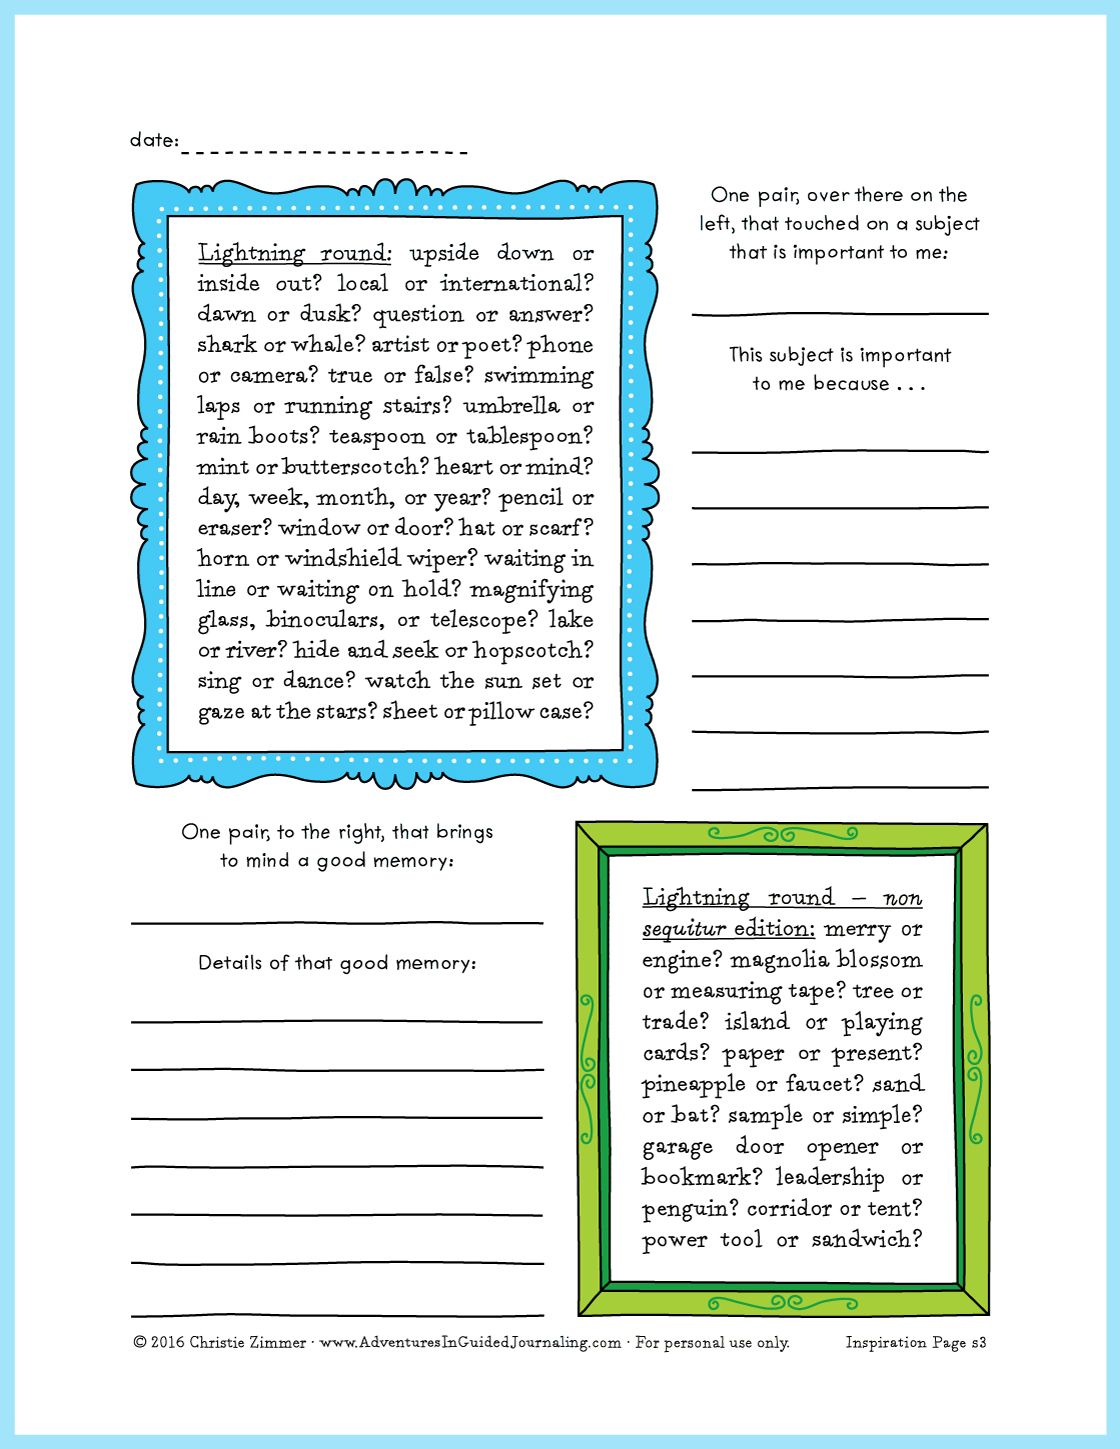 Lightning Round Printable Journal Page From Adventures In Guided Journaling By Christie Zimmer